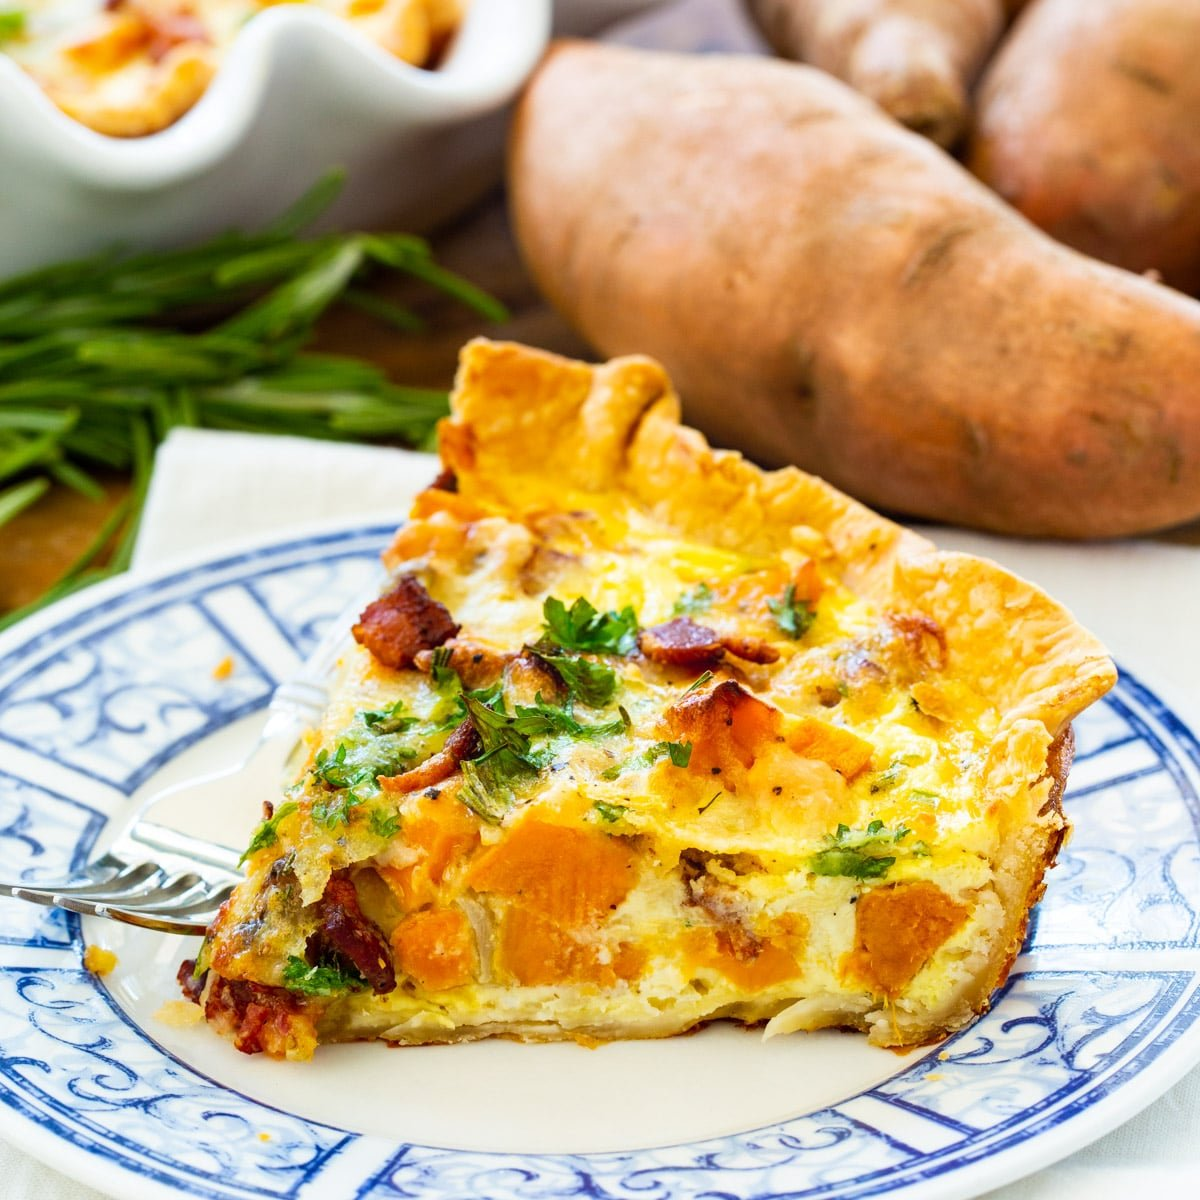 Slice of Roasted Sweet Potato Quiche on a plate.